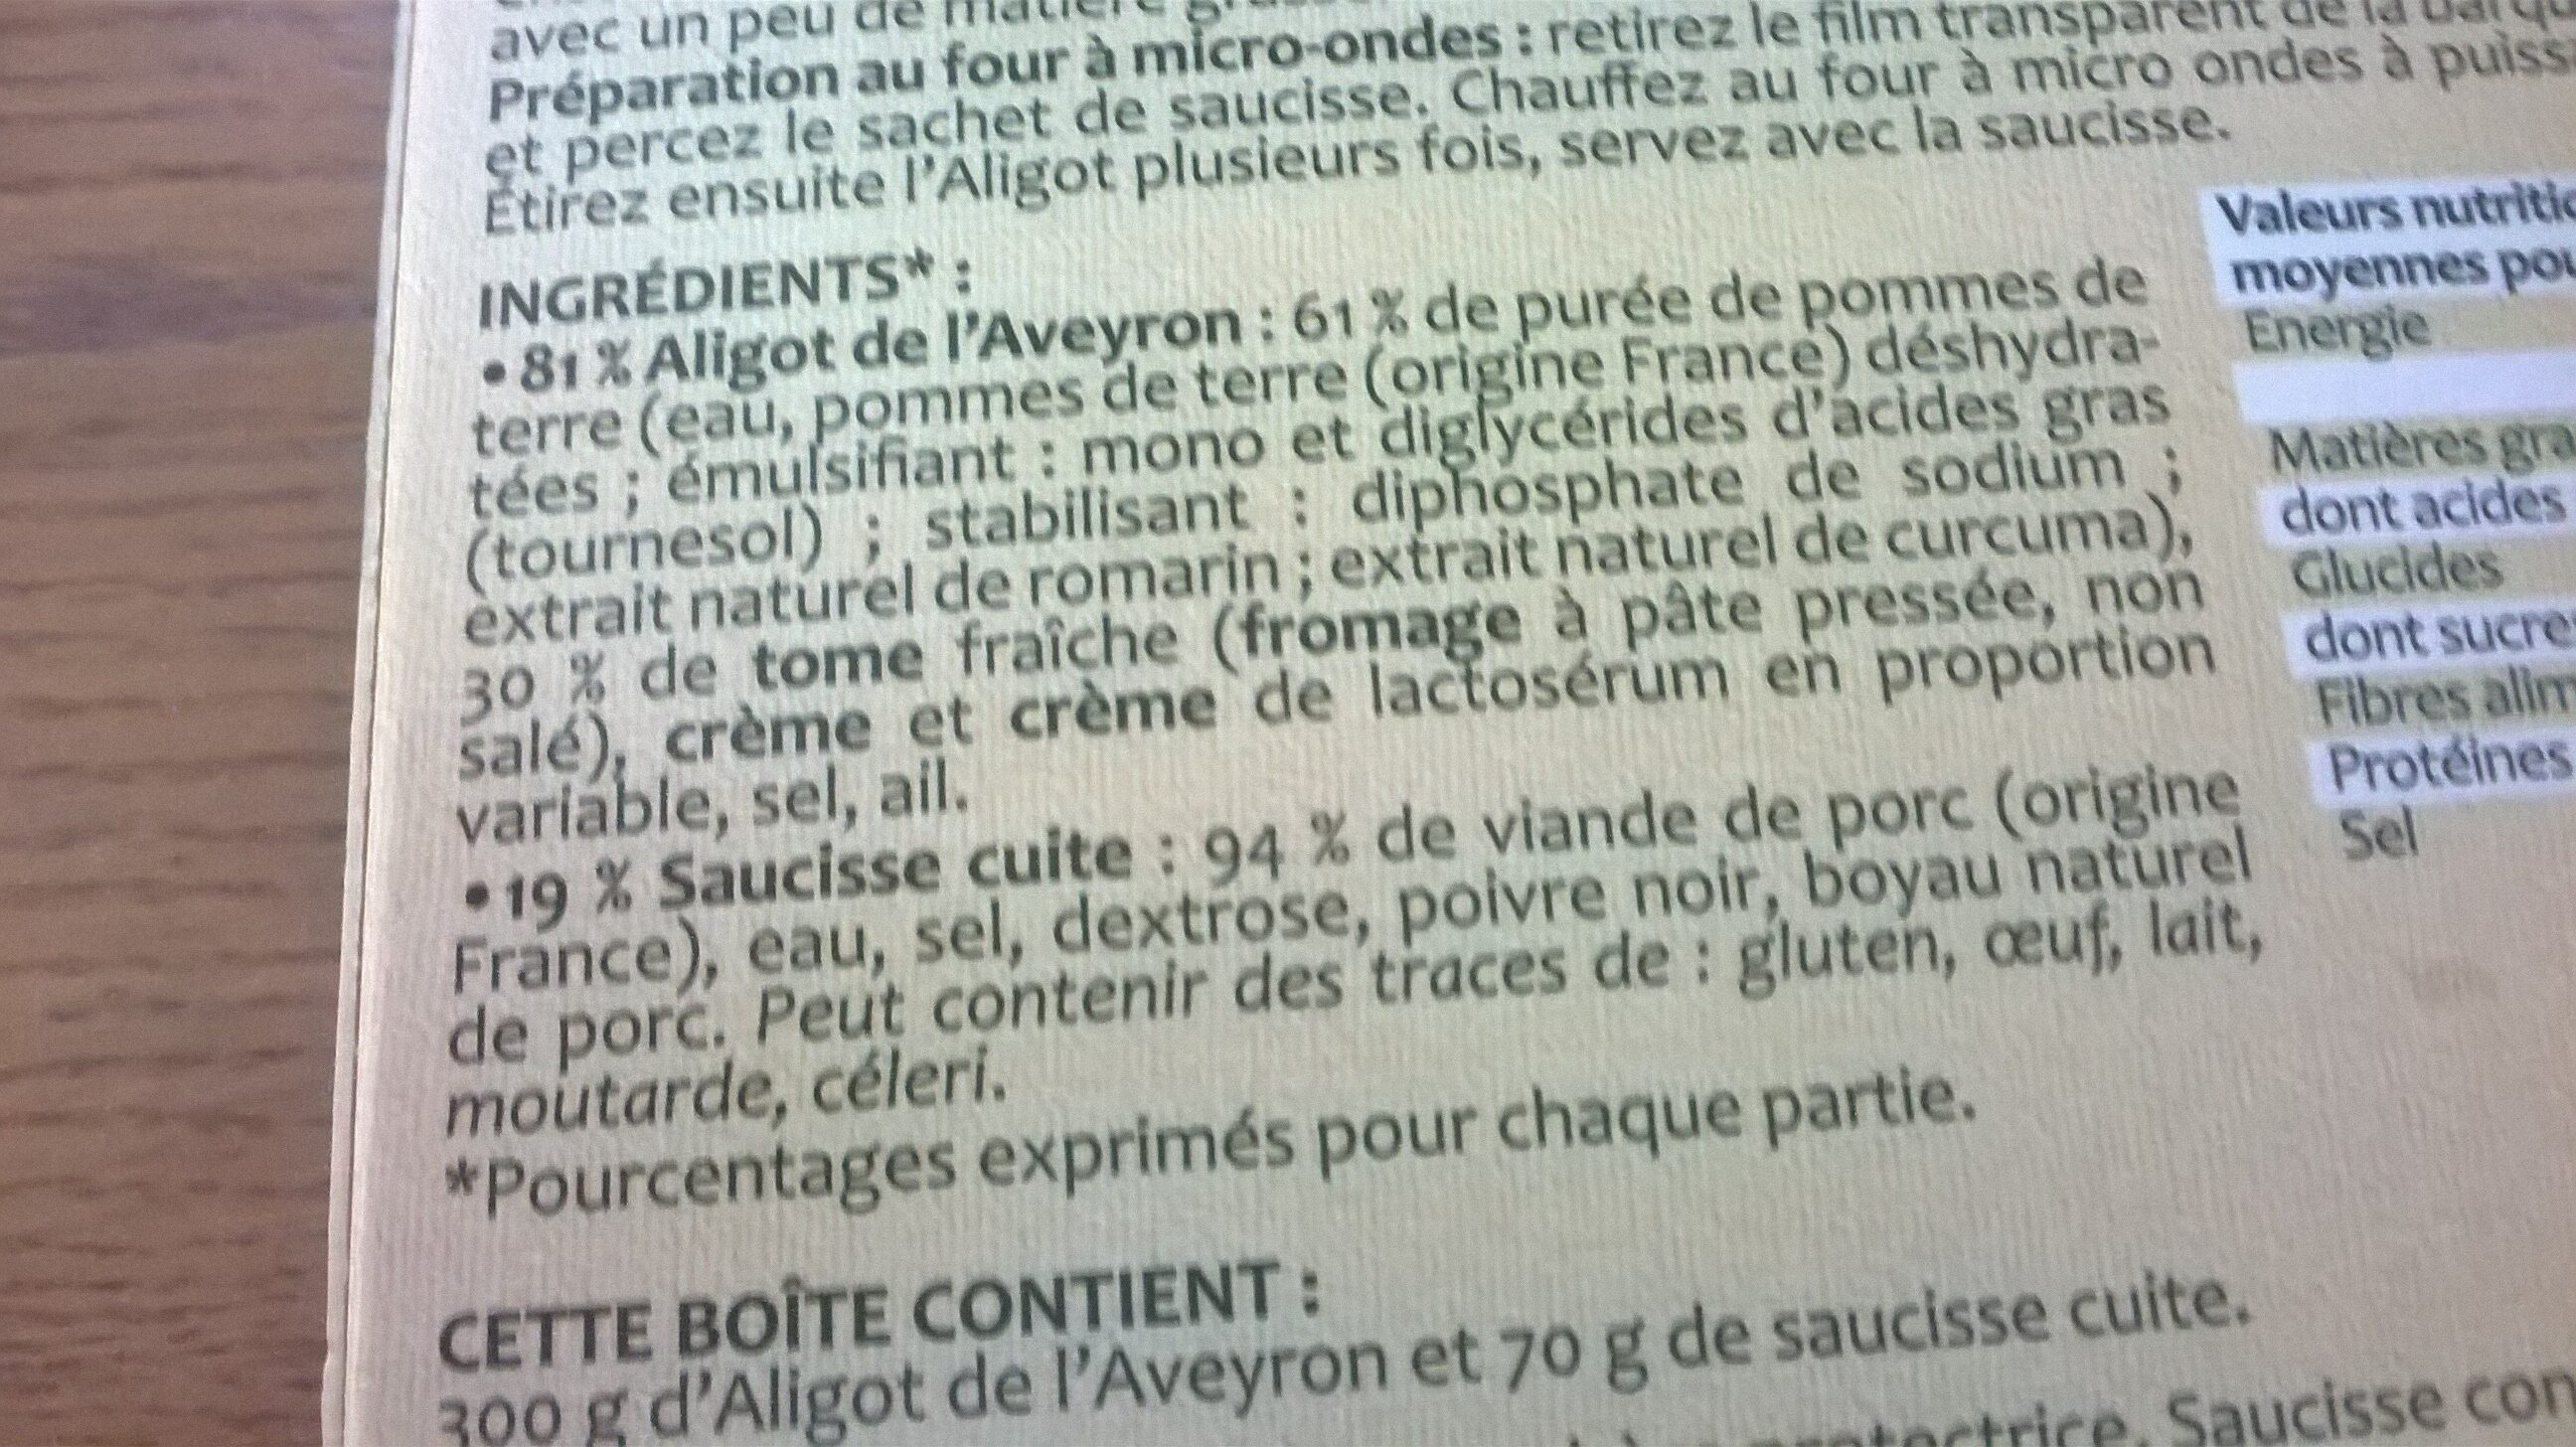 Aligot de l'Aveyron & Saucisse - Ingredients - en